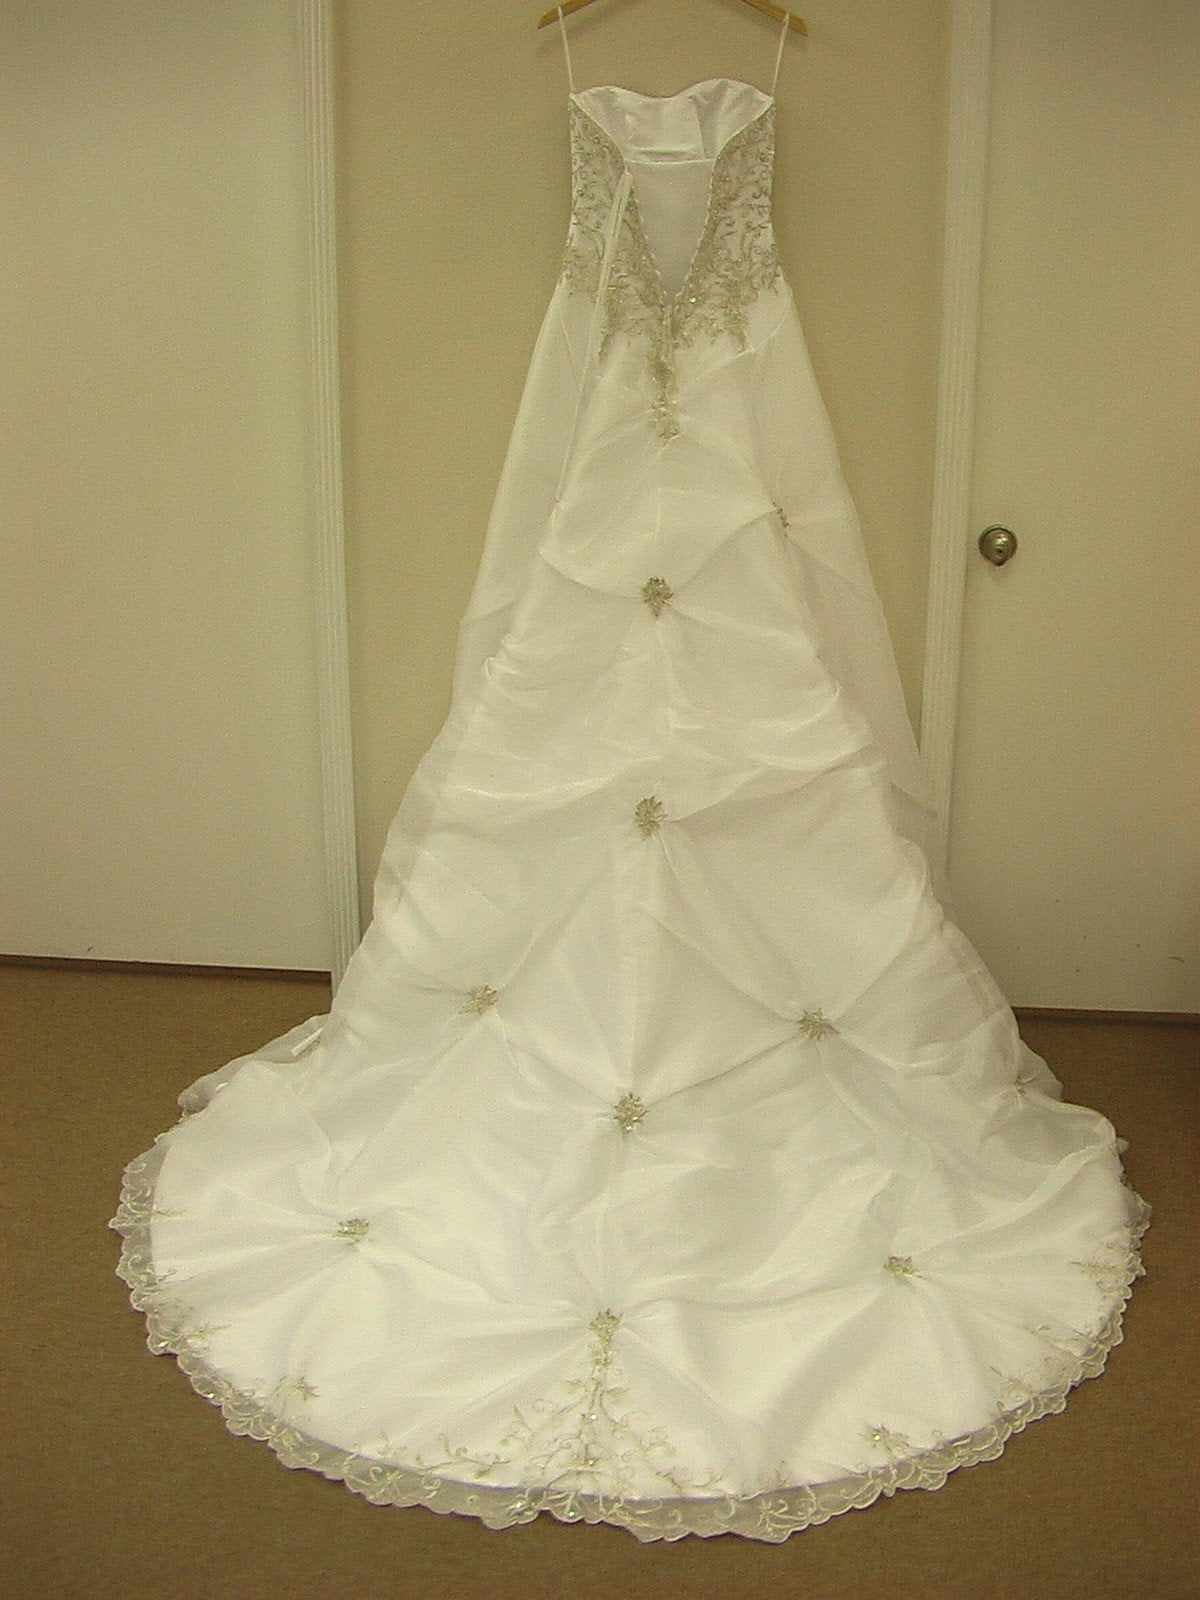 Mori Lee Blu 4133 White/Silver size 6 In Stock Wedding Dress - Tom's Bridal